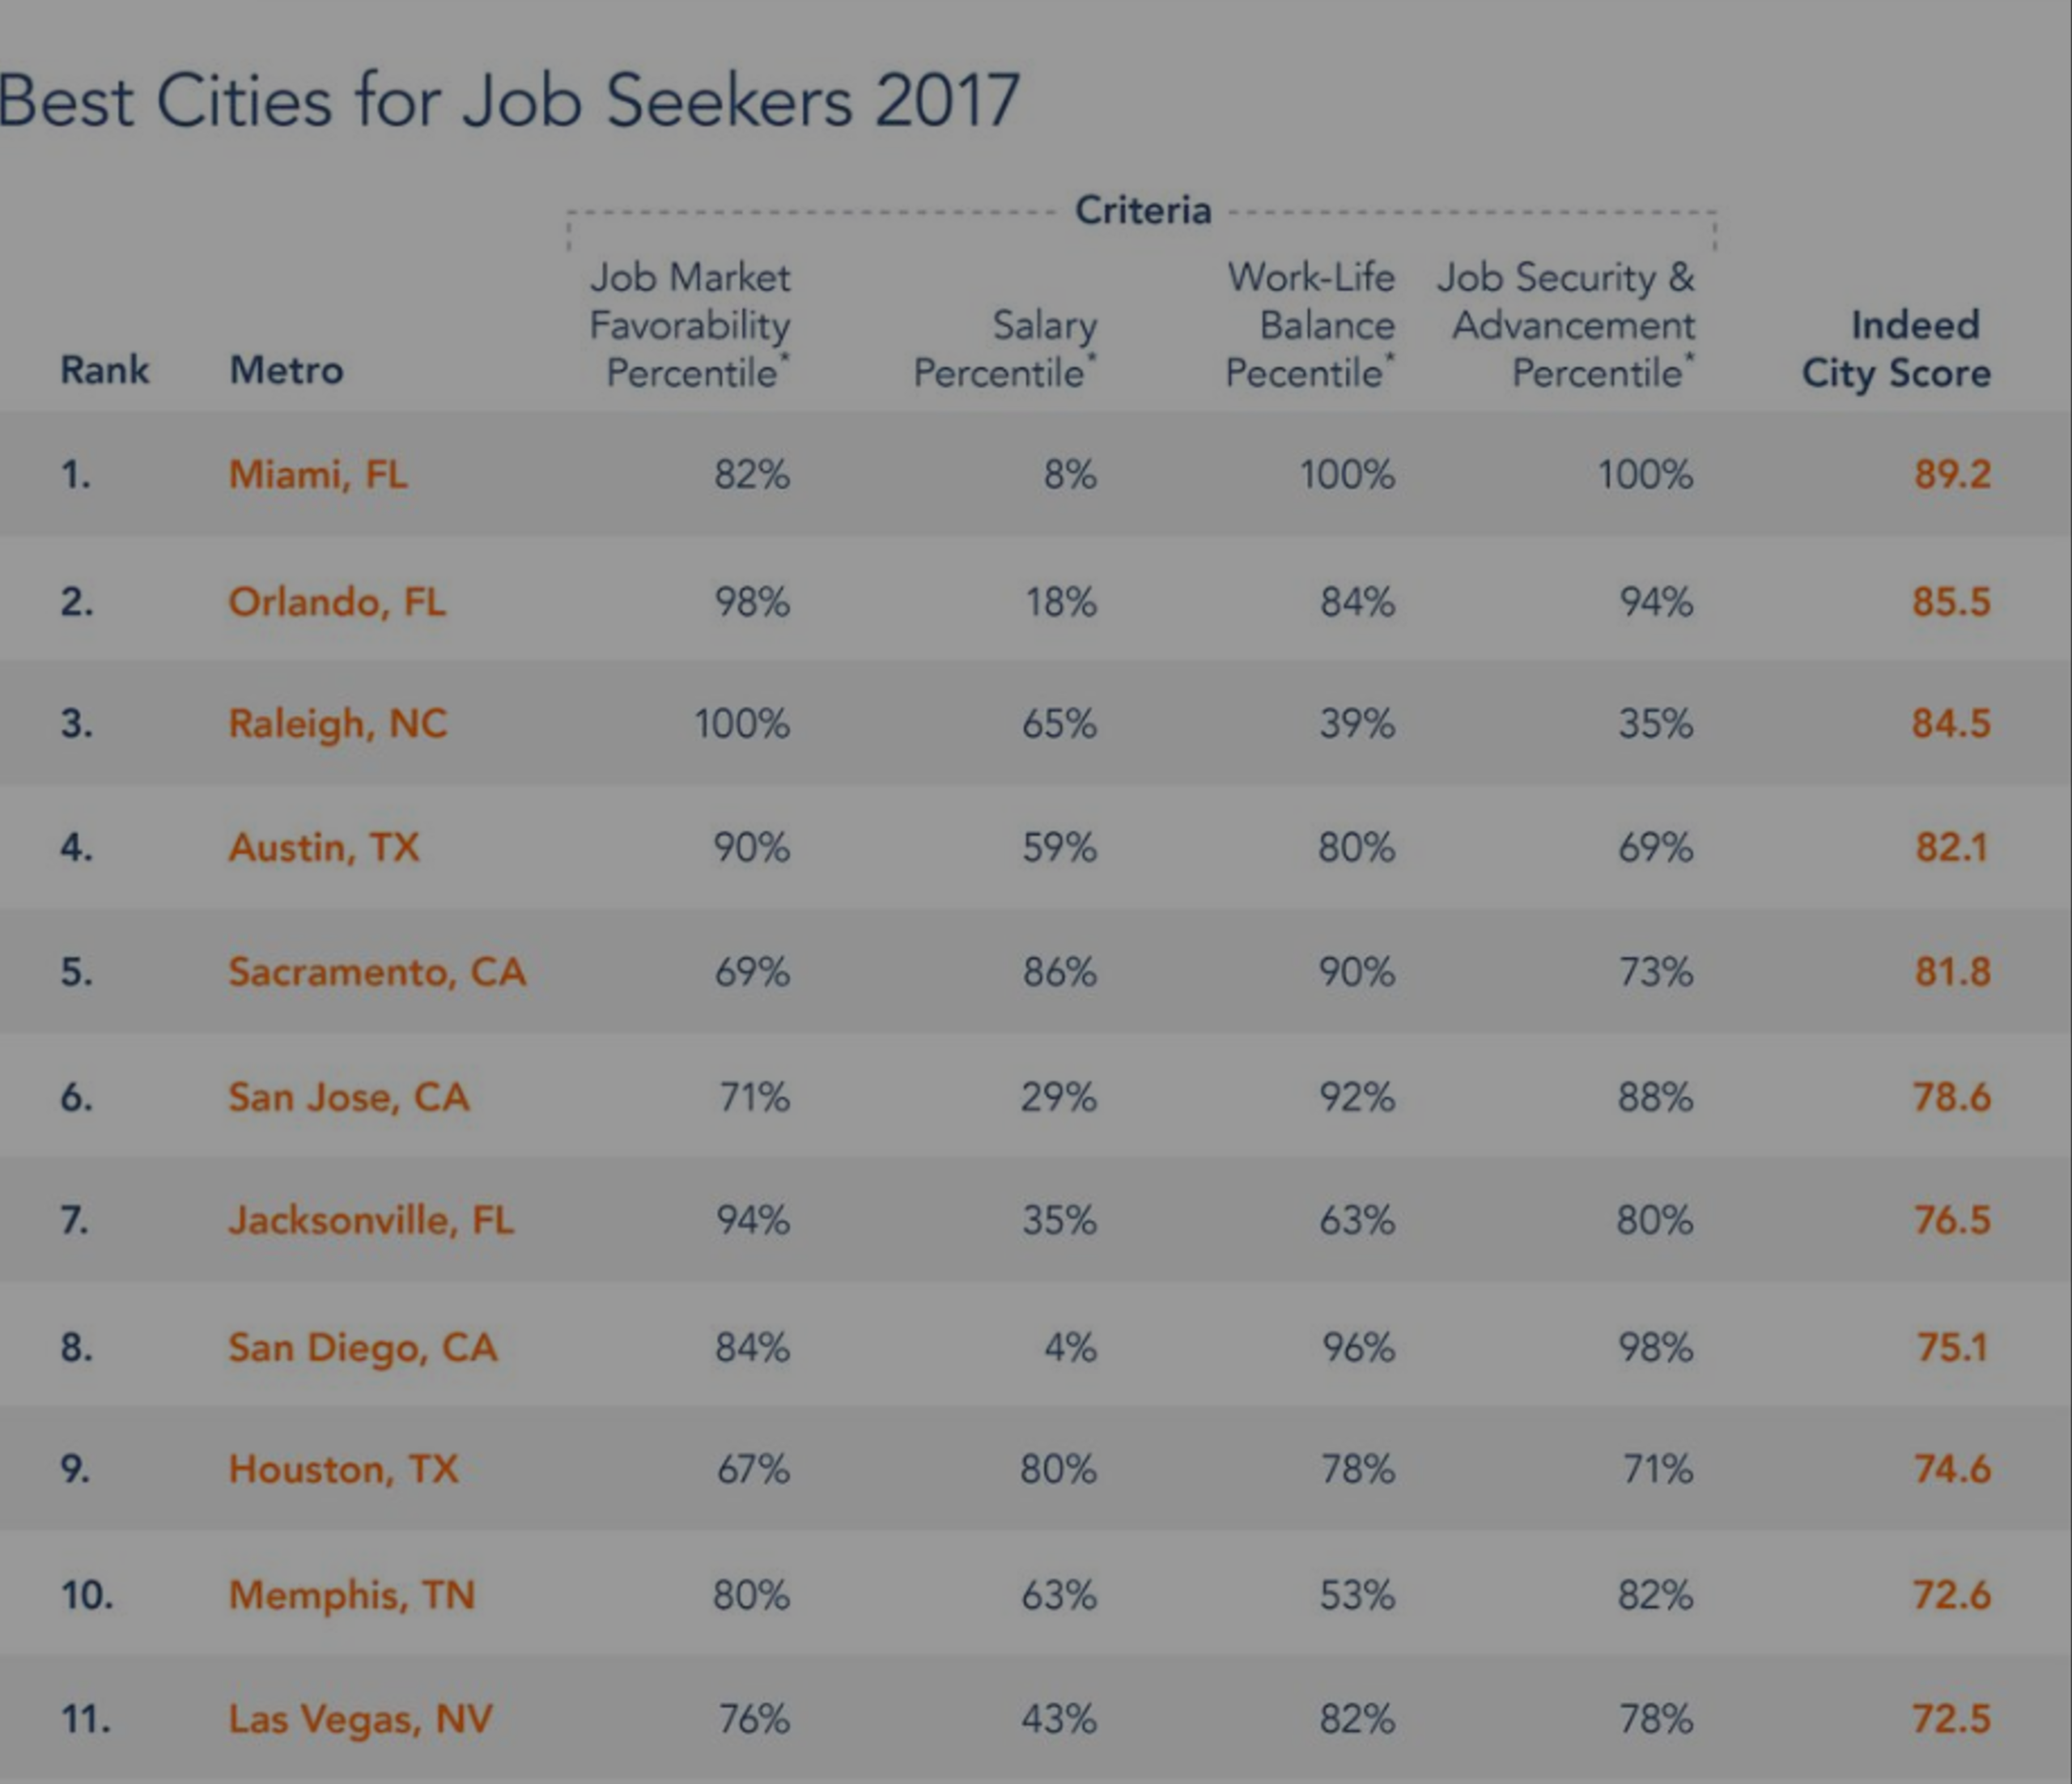 Orlando #2 in Nation for Best City for Job Seekers